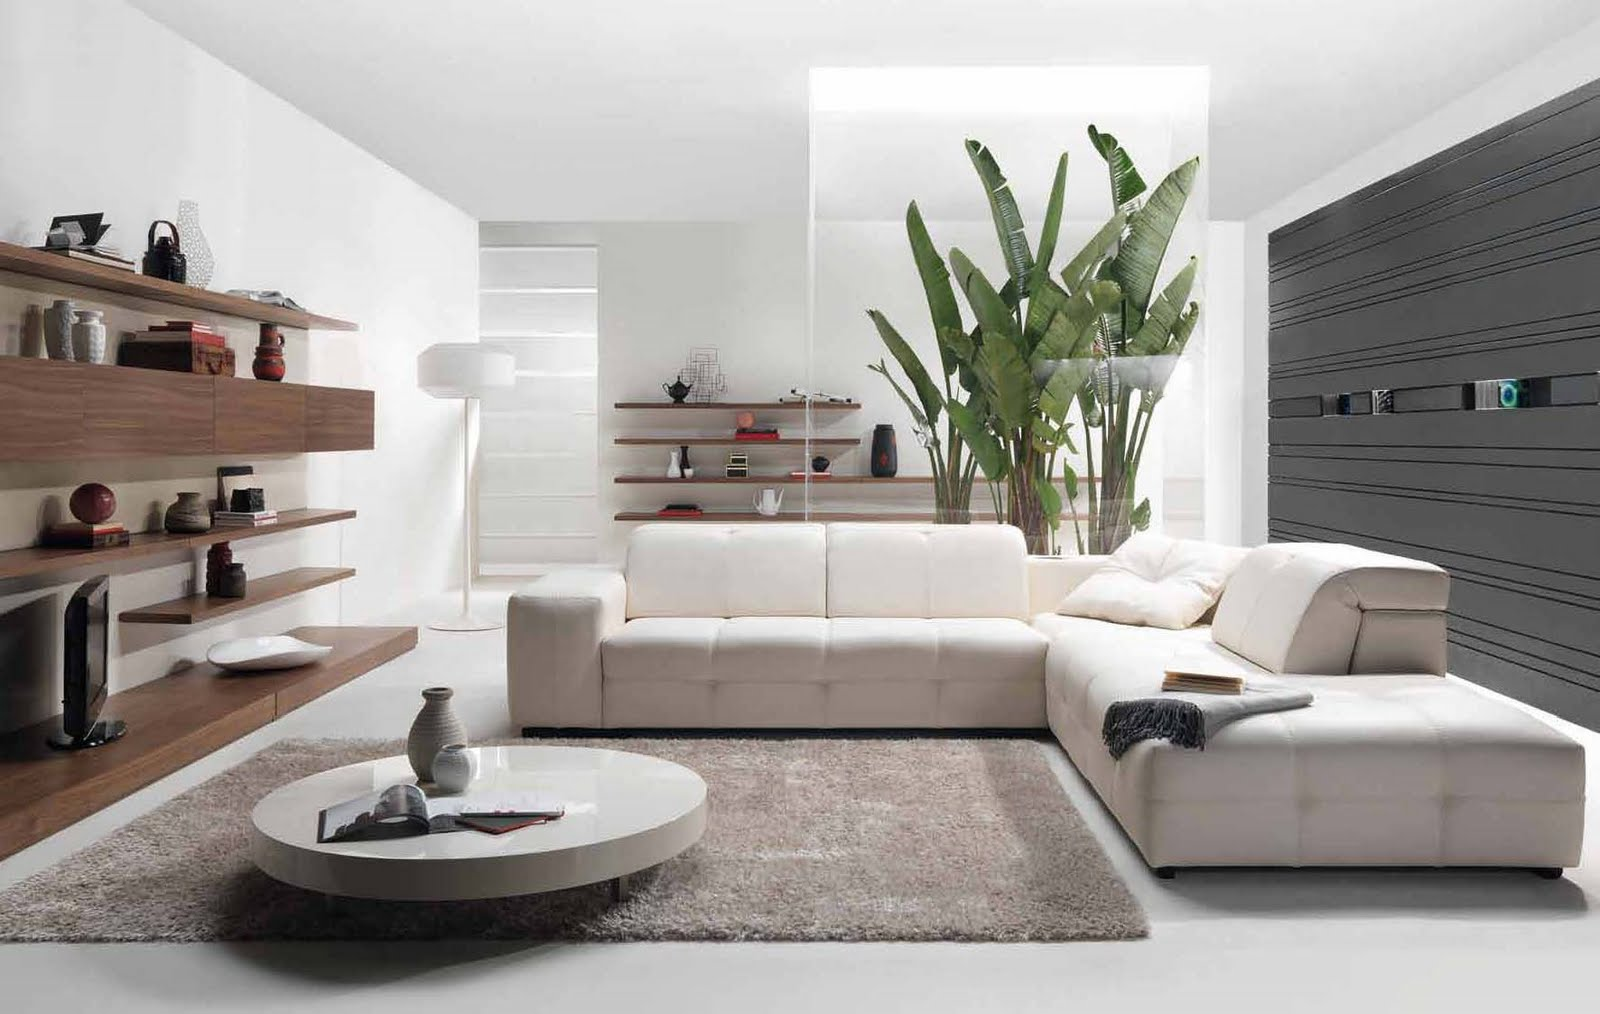 Future house design modern living room interior design Interior decoration for living room